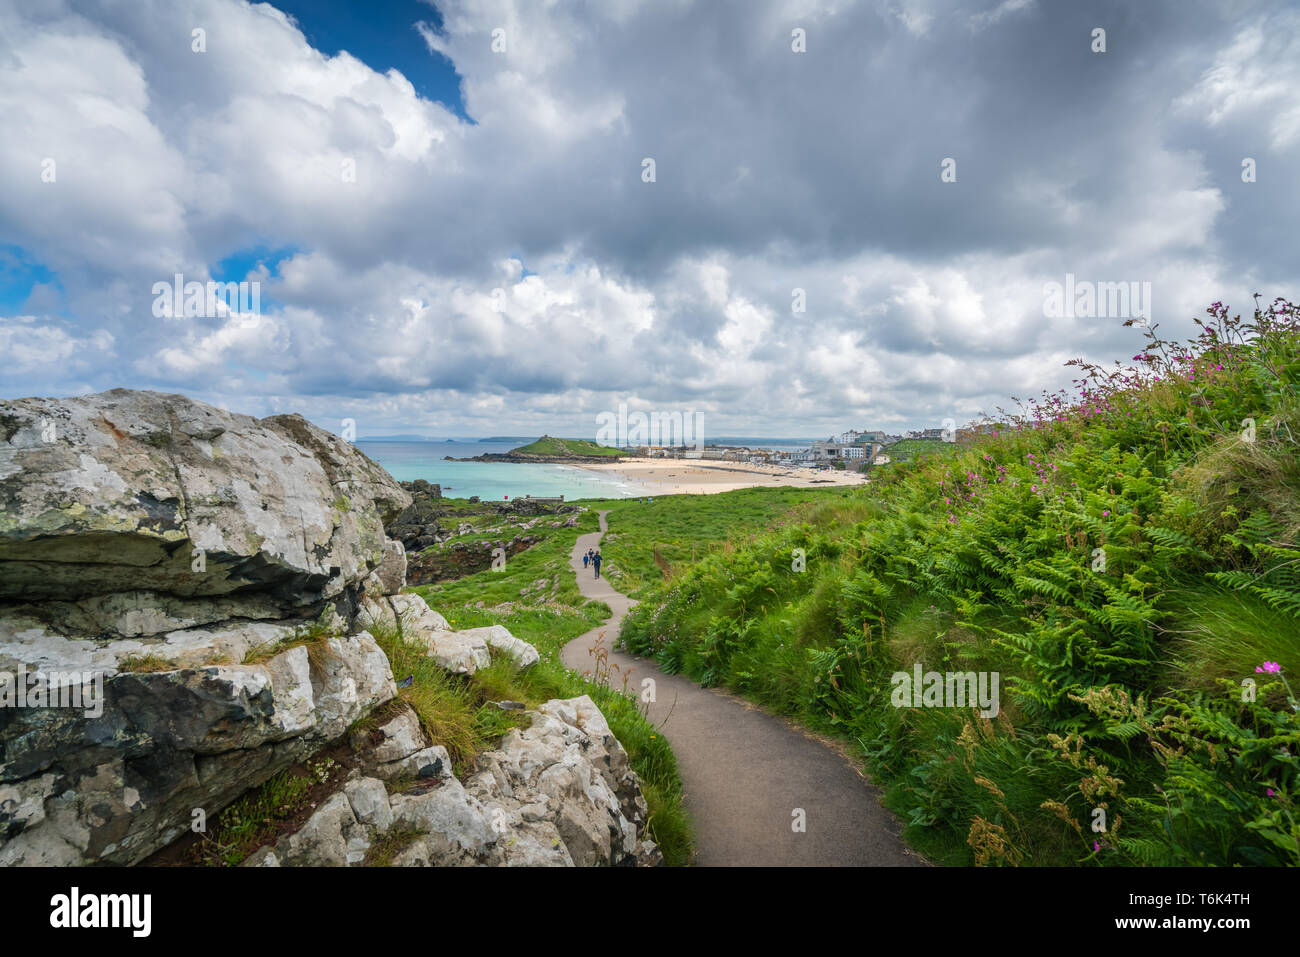 Coastal pathway in St Ives - Stock Image